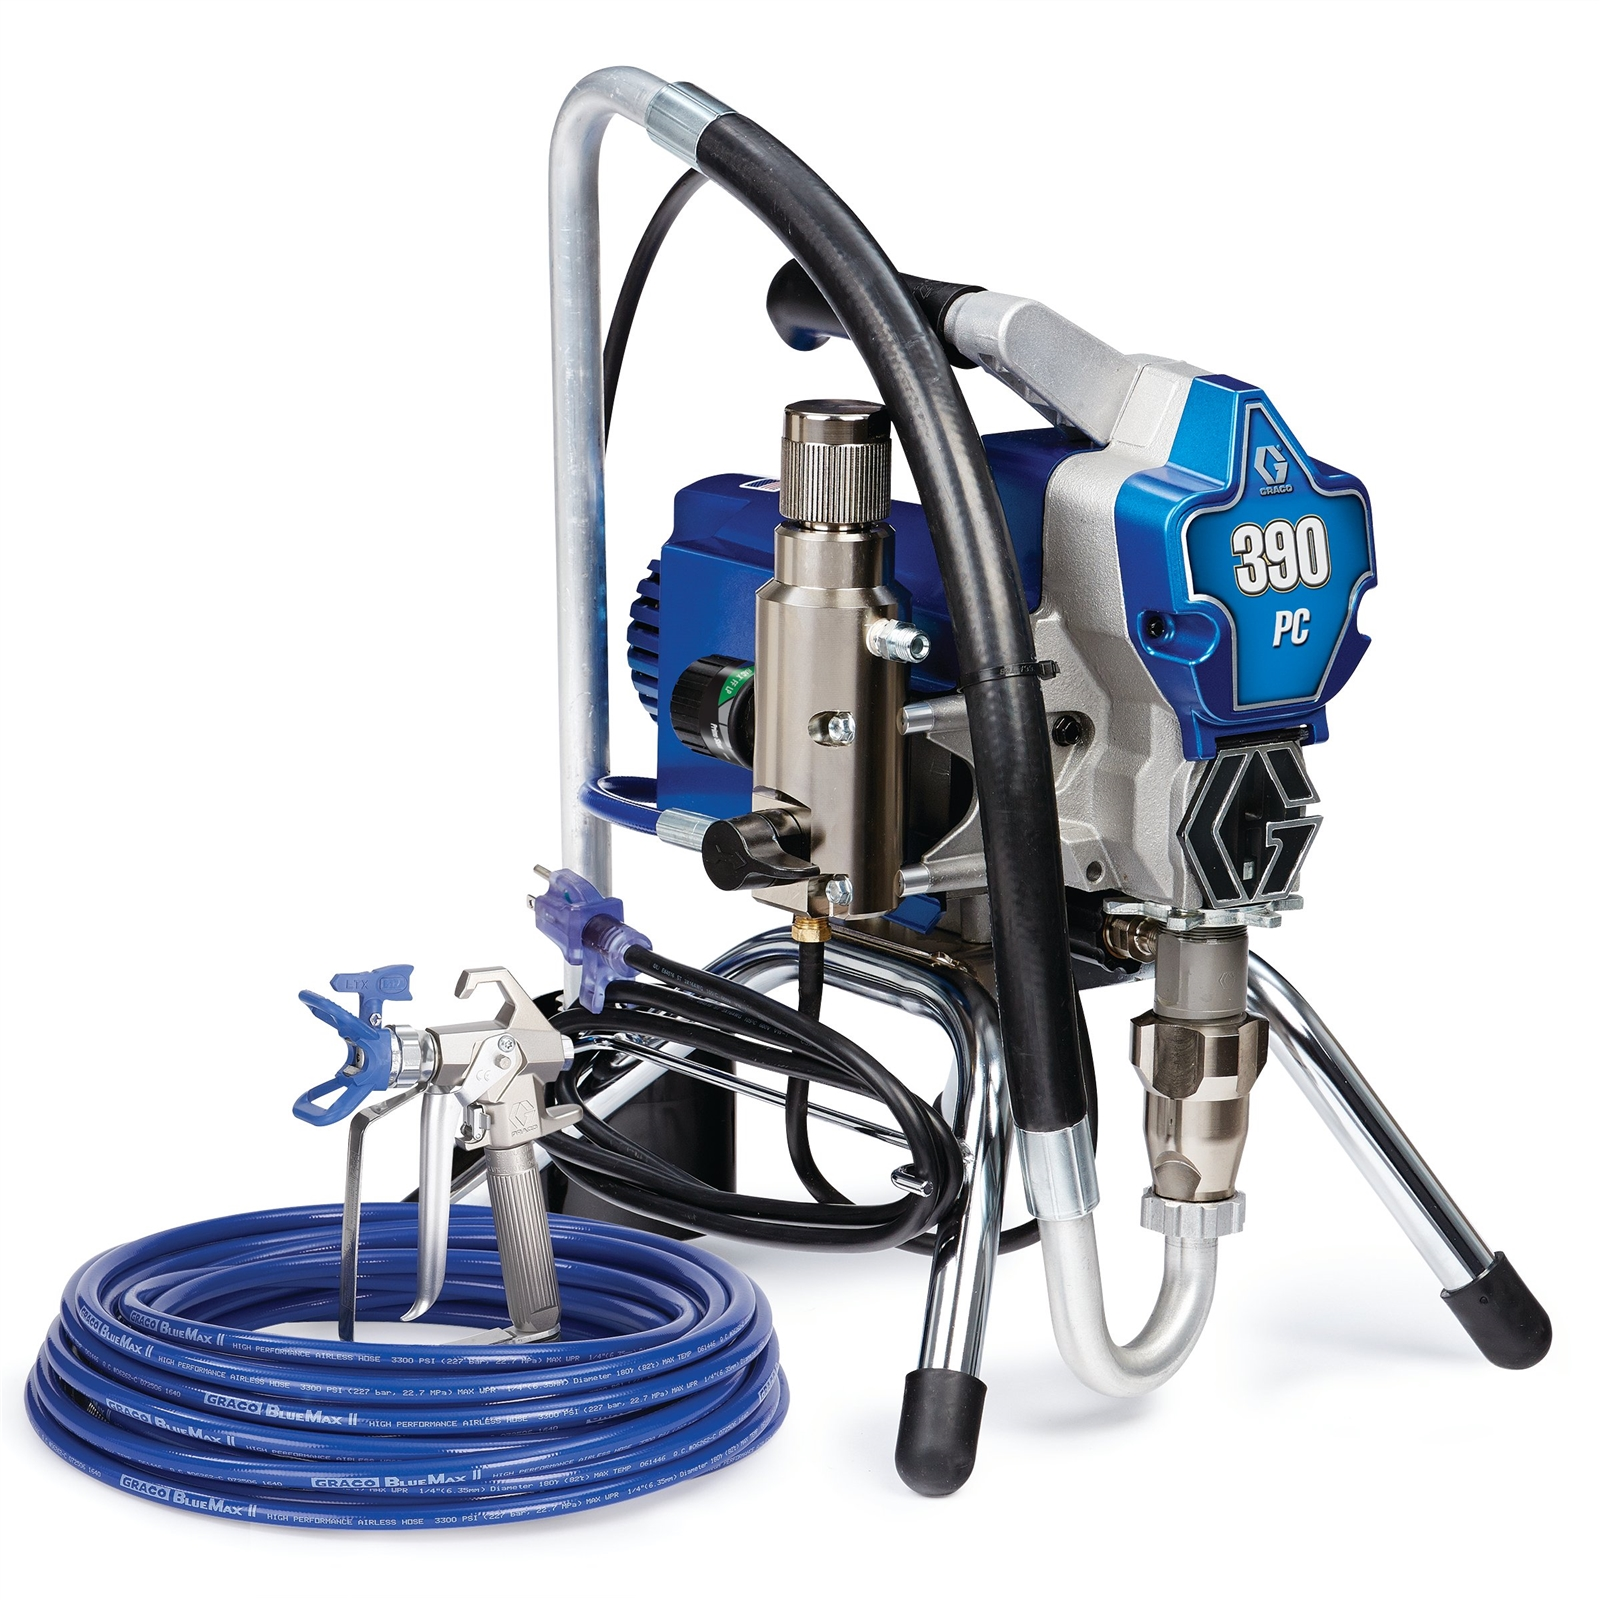 390 PC Electric Airless Sprayer, Stand